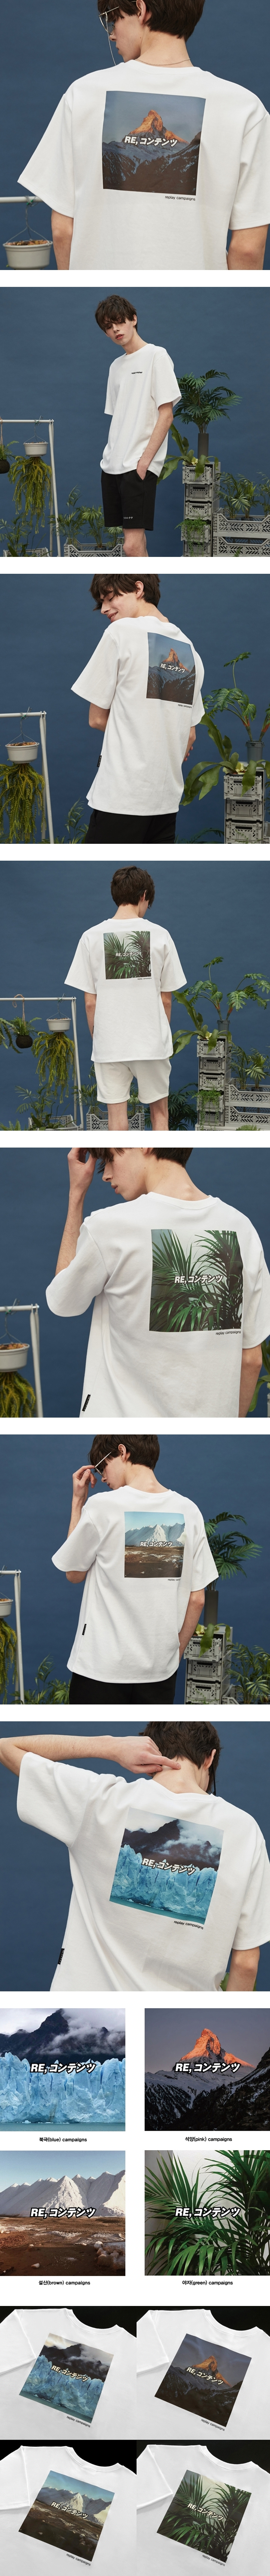 new_replay campaign tee_pink_cafe24-vert.jpg